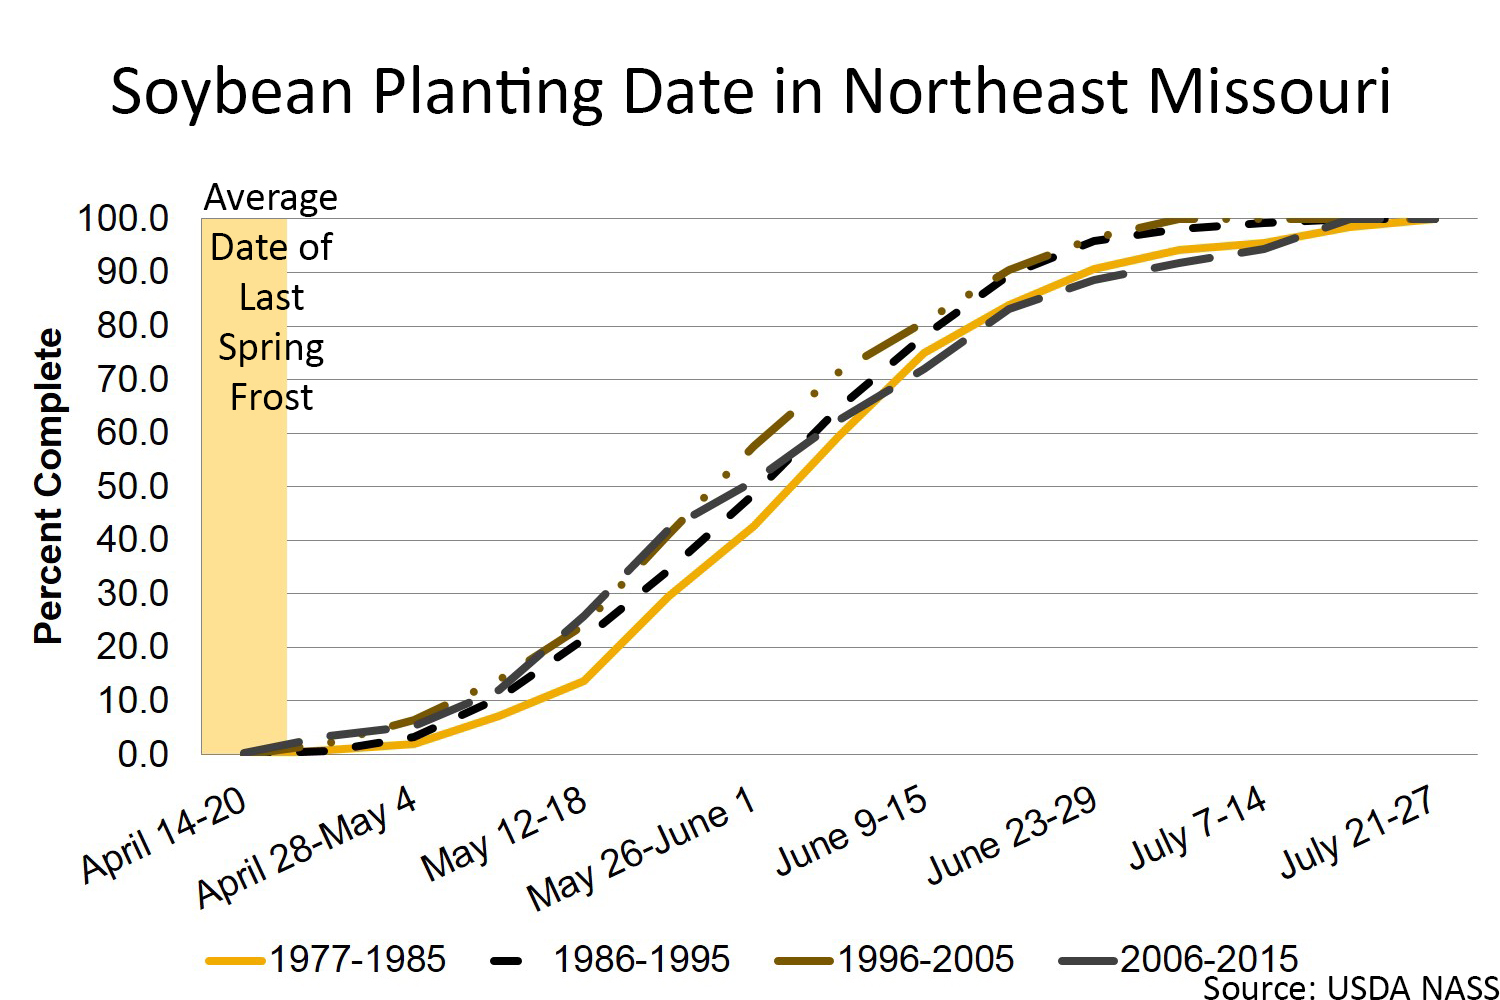 Soybean planting date in northeast Missouri chart